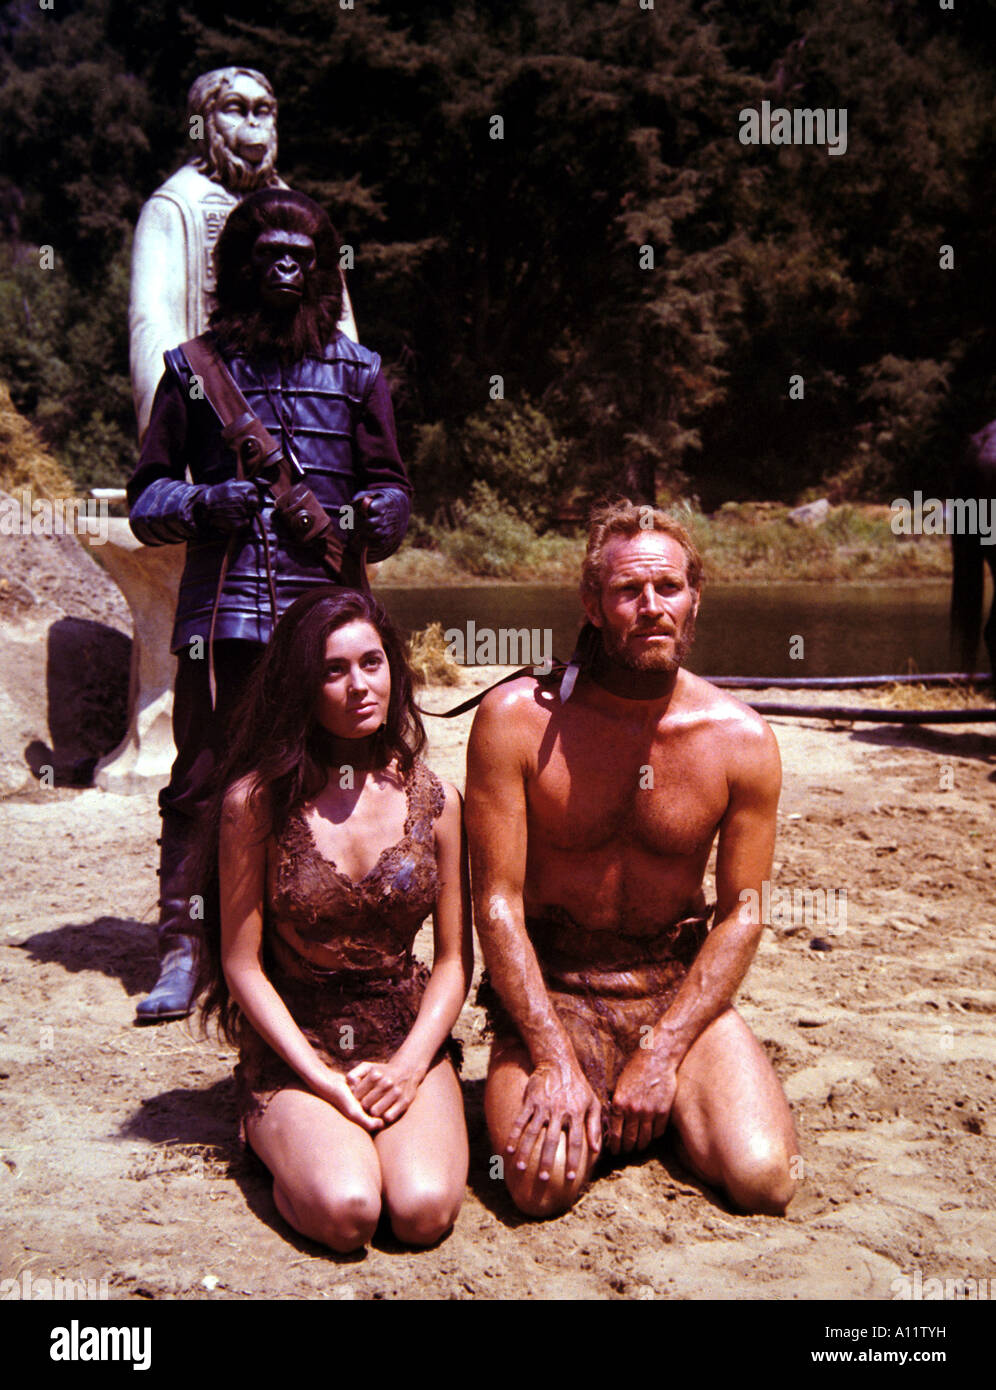 Planet Of The Apes Year 1968 Director Franklin Schaffner Charlton Heston Linda Harrison Based on the book by Pierre - Stock Image